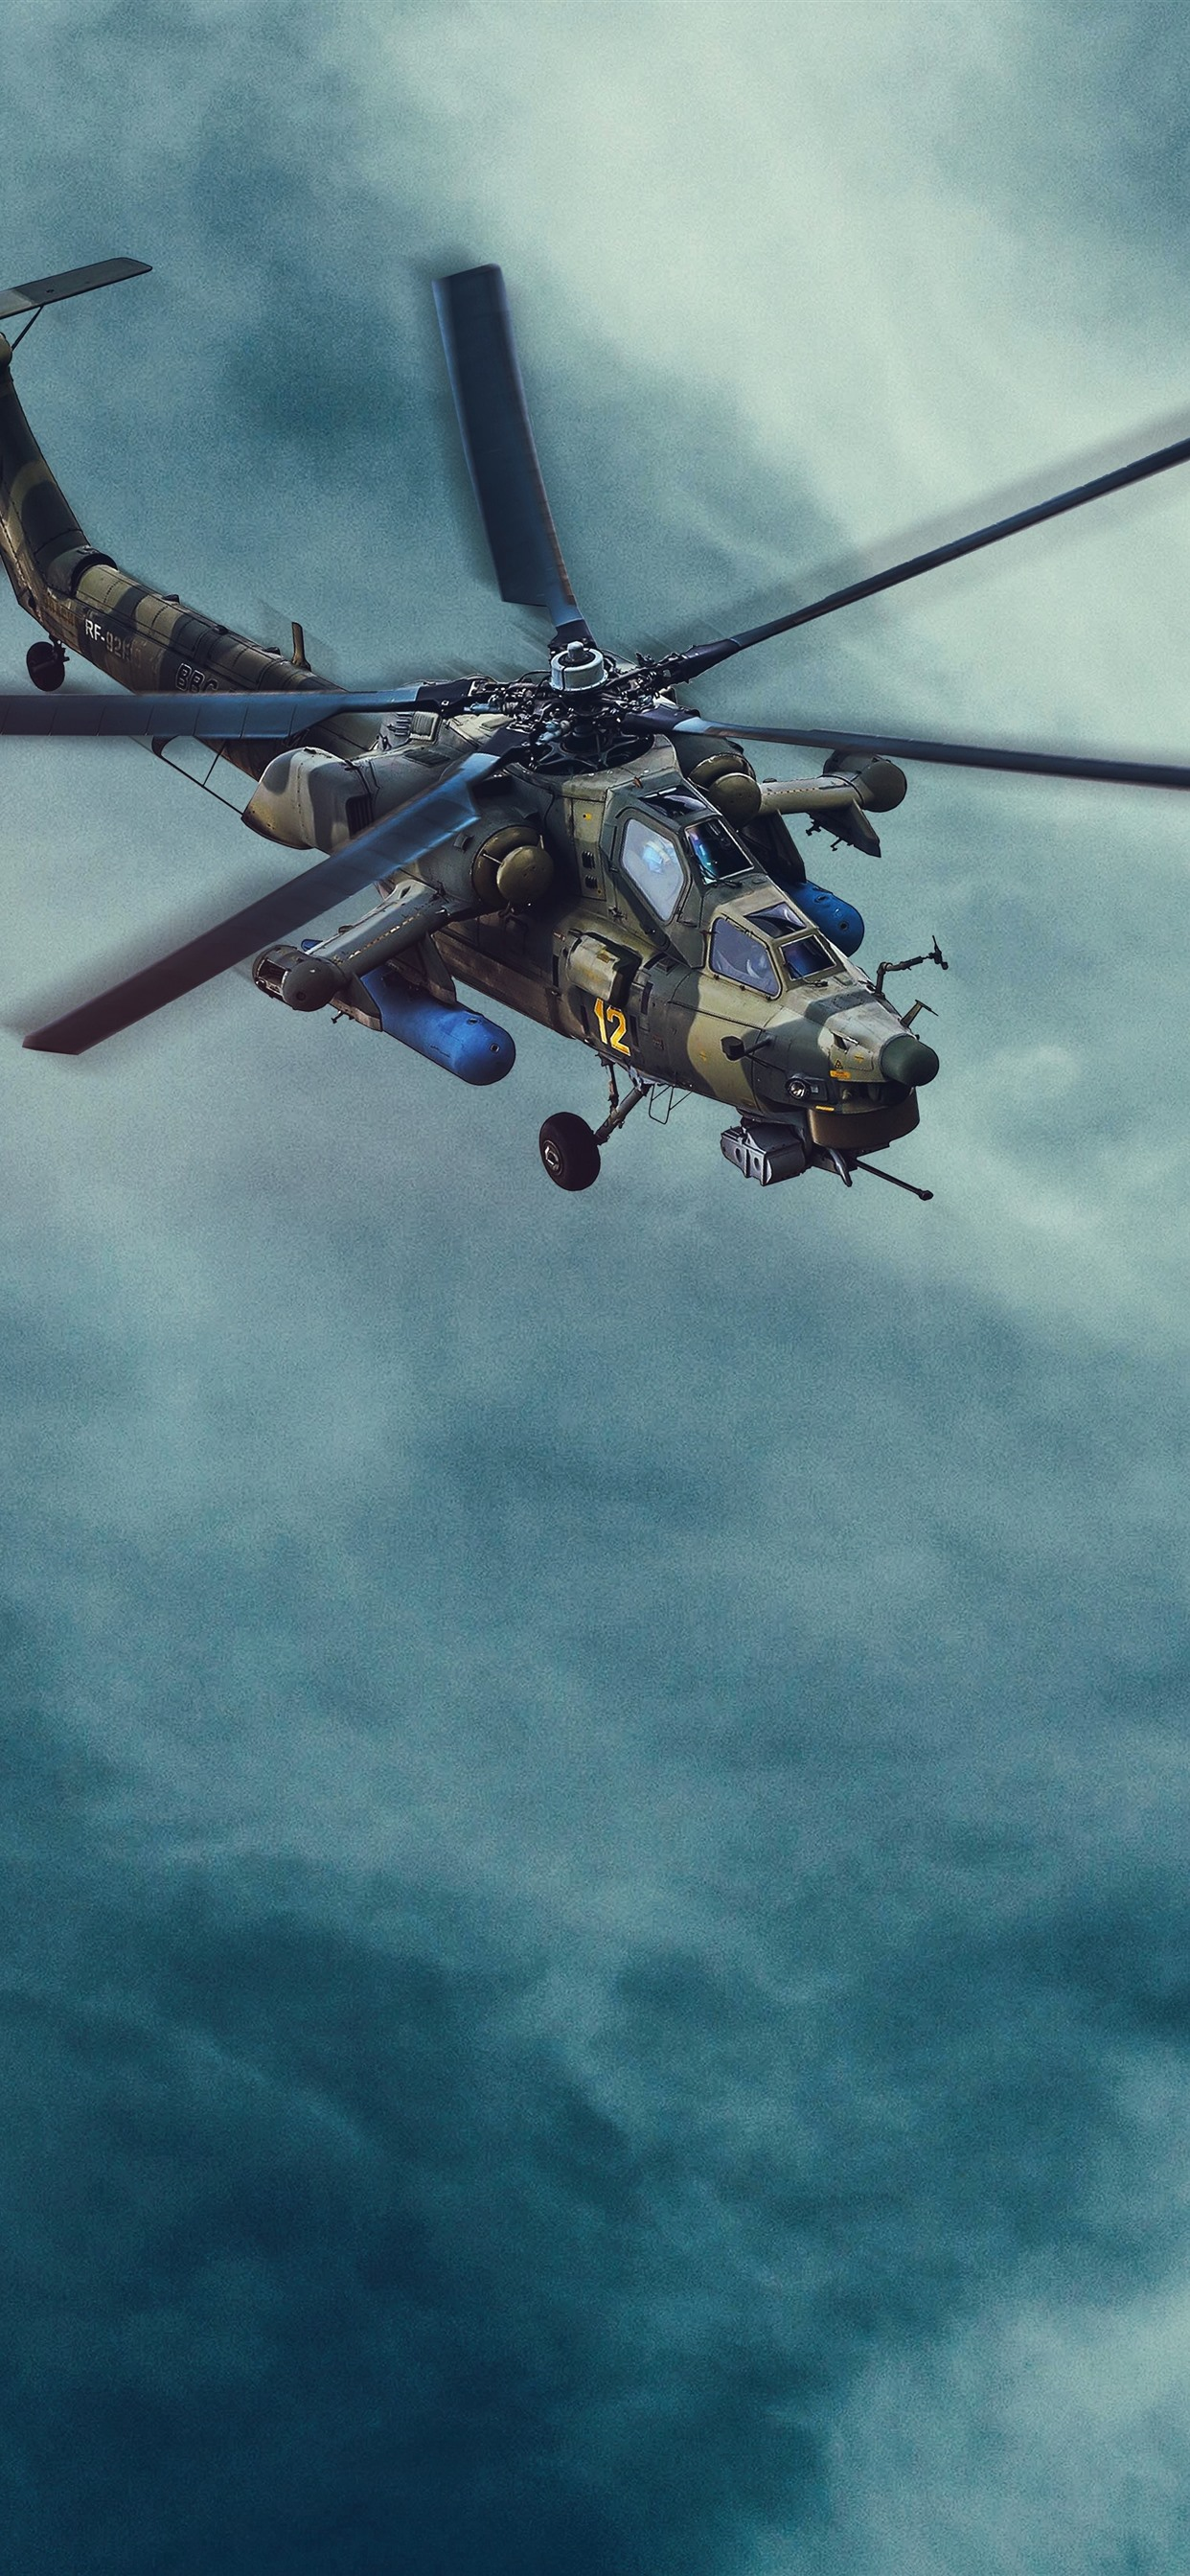 Wallpaper Helicopter Blue Sky 7680x4320 Uhd 8k Picture Image